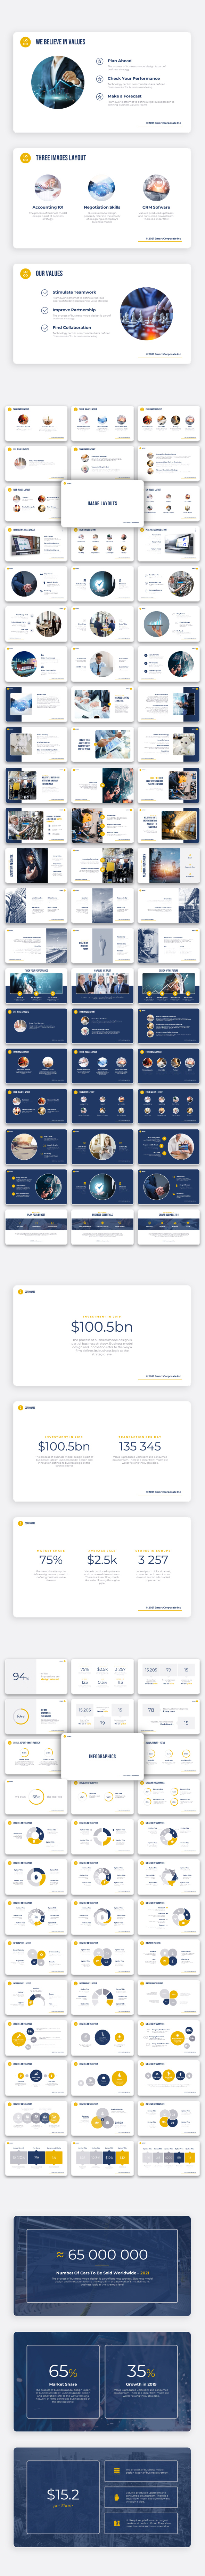 Corporate - Premium PowerPoint Template for Business - 9